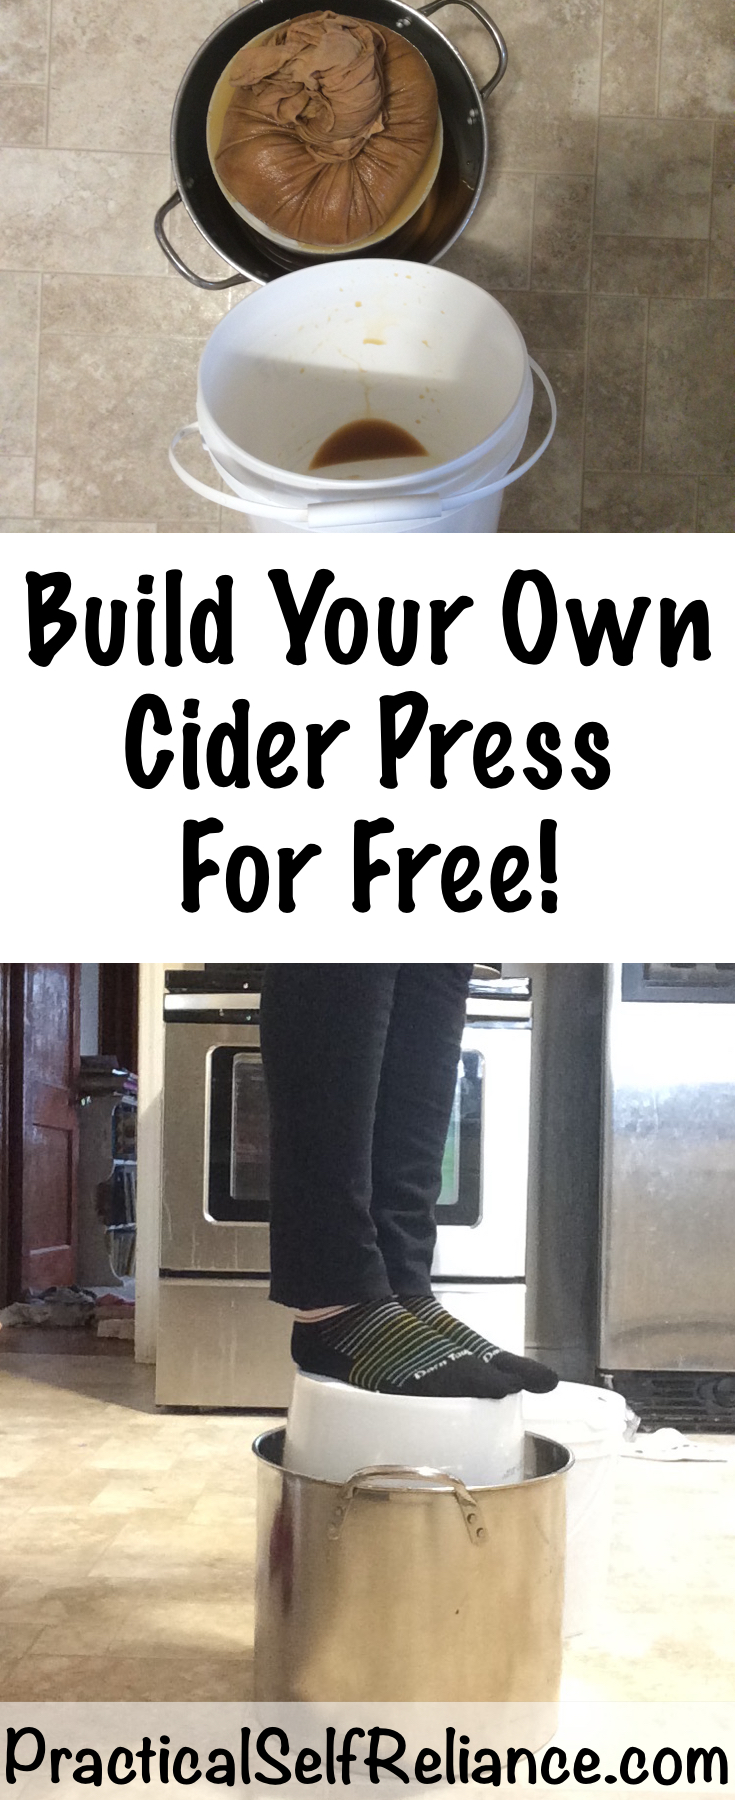 Build Your Own DIY Cider Press for Free